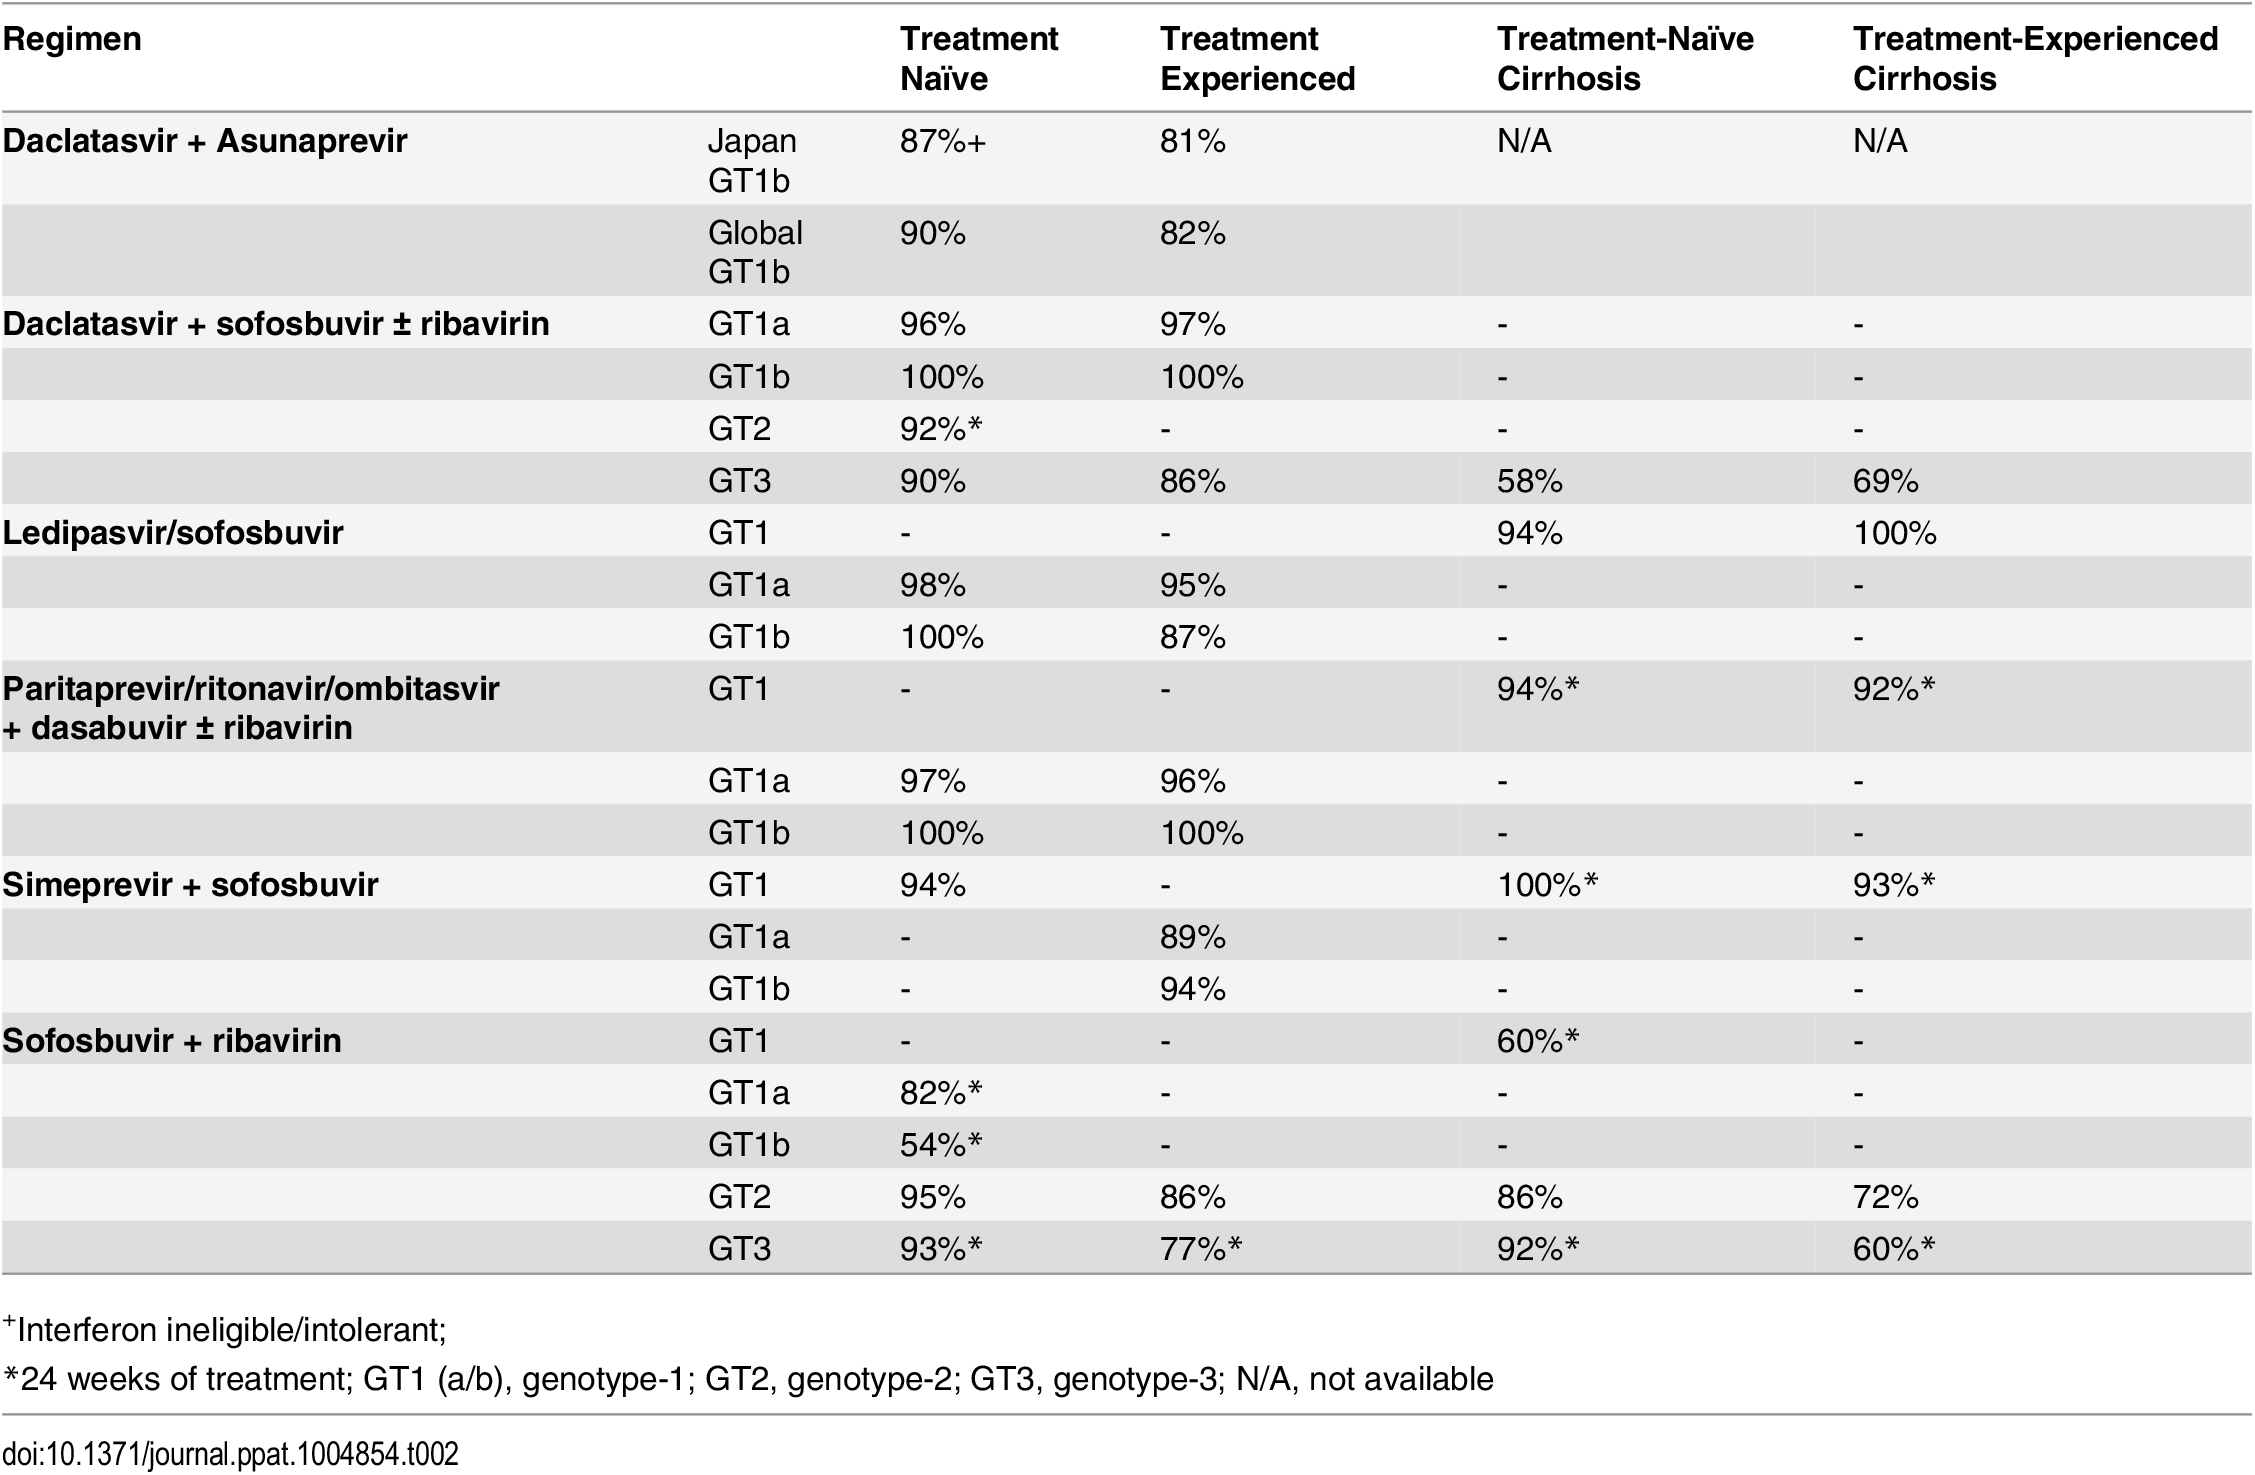 Sustained virologic response for all-oral direct acting antiviral regimens.